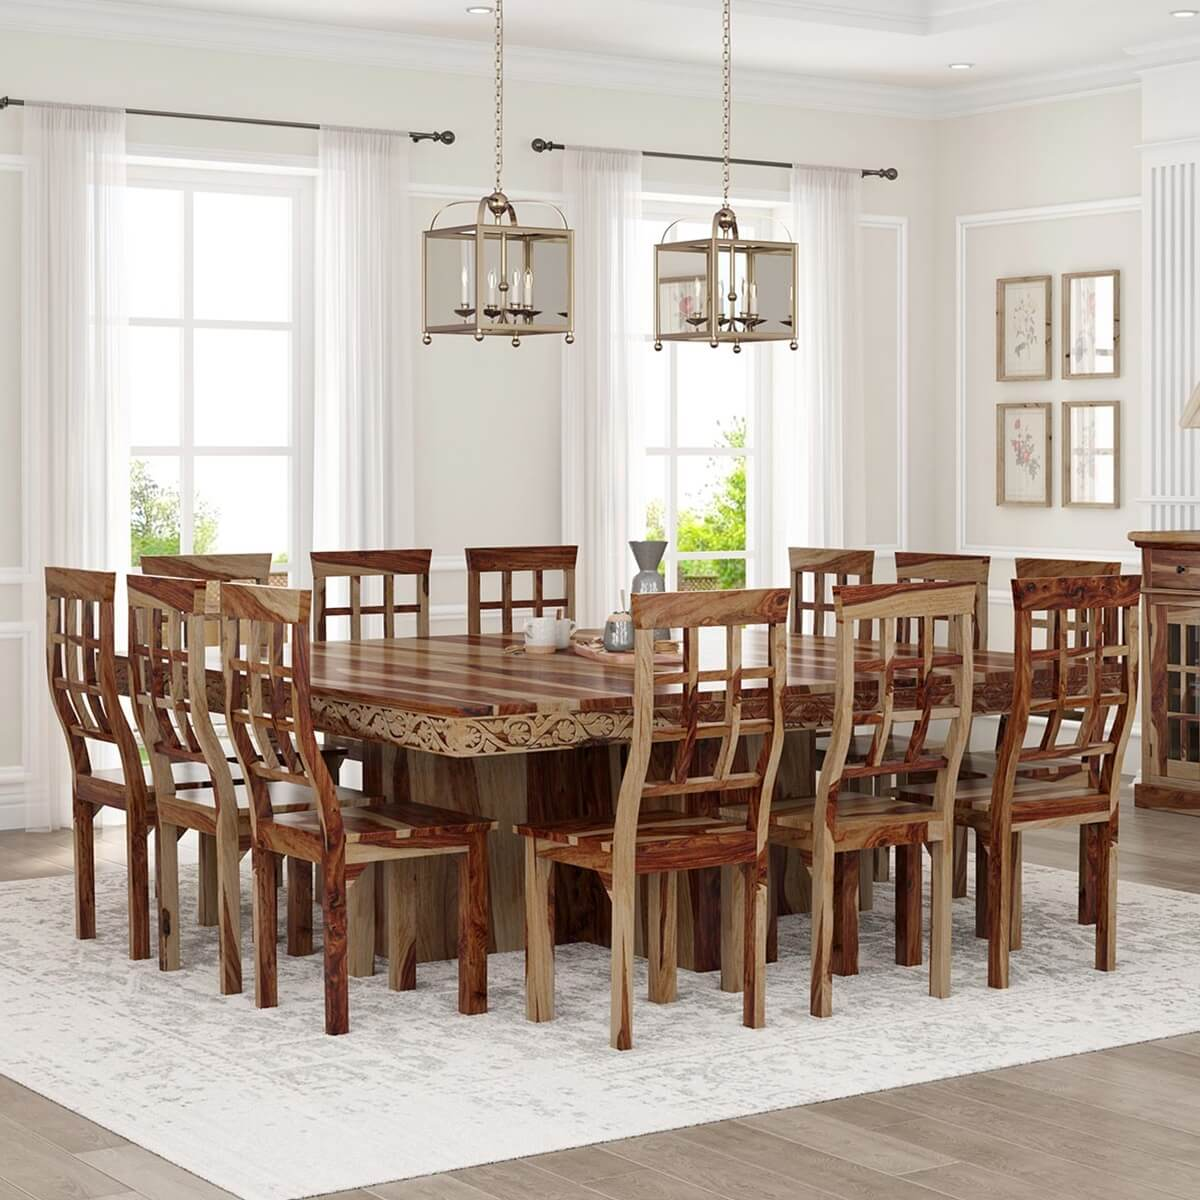 Dallas ranch large square dining room table and chair set for Small square dining room table